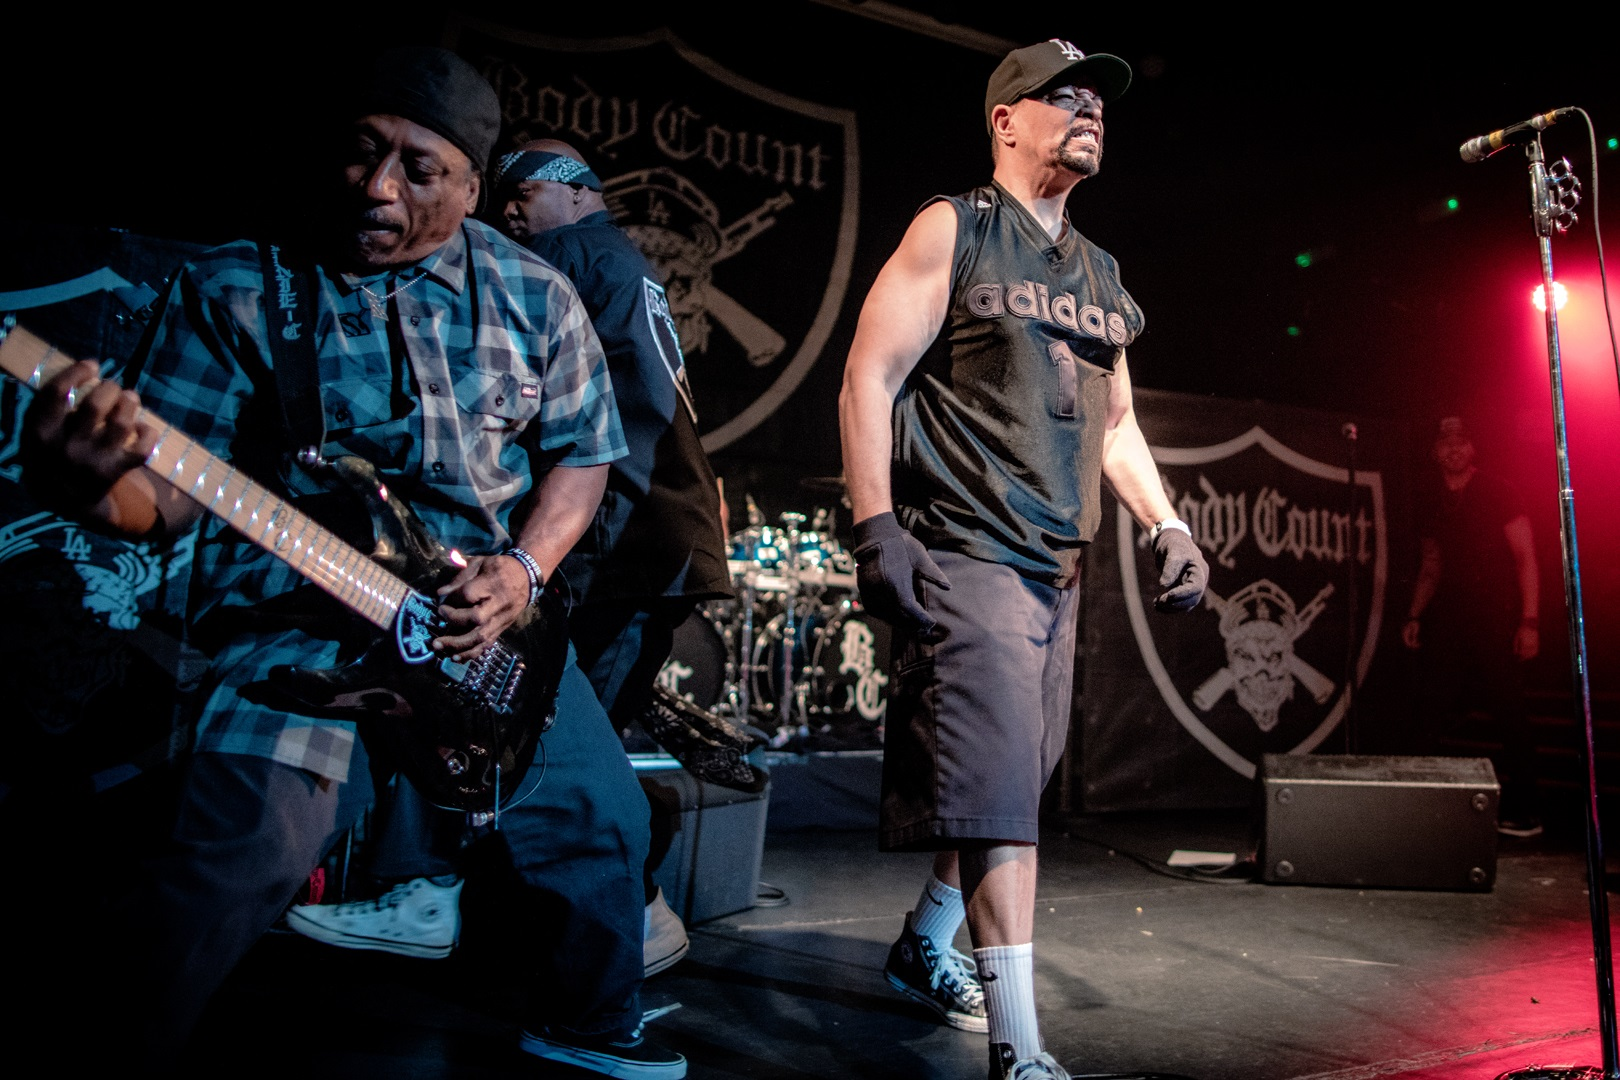 GALLERY: Body Count, Astroid Boys & Crisix Live at Koko